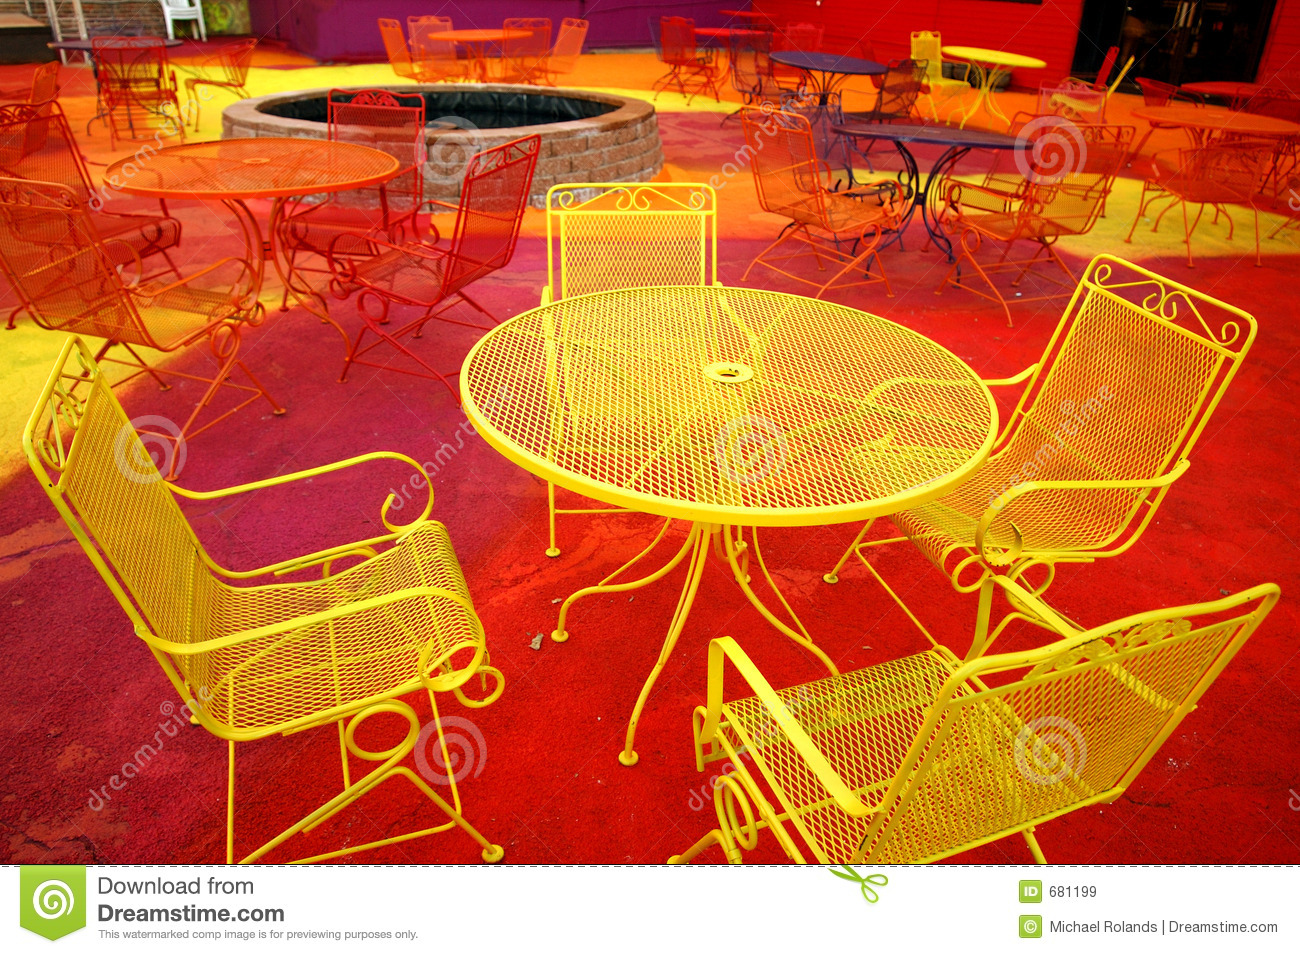 neon furniture royalty free stock images  image  - neon furniture